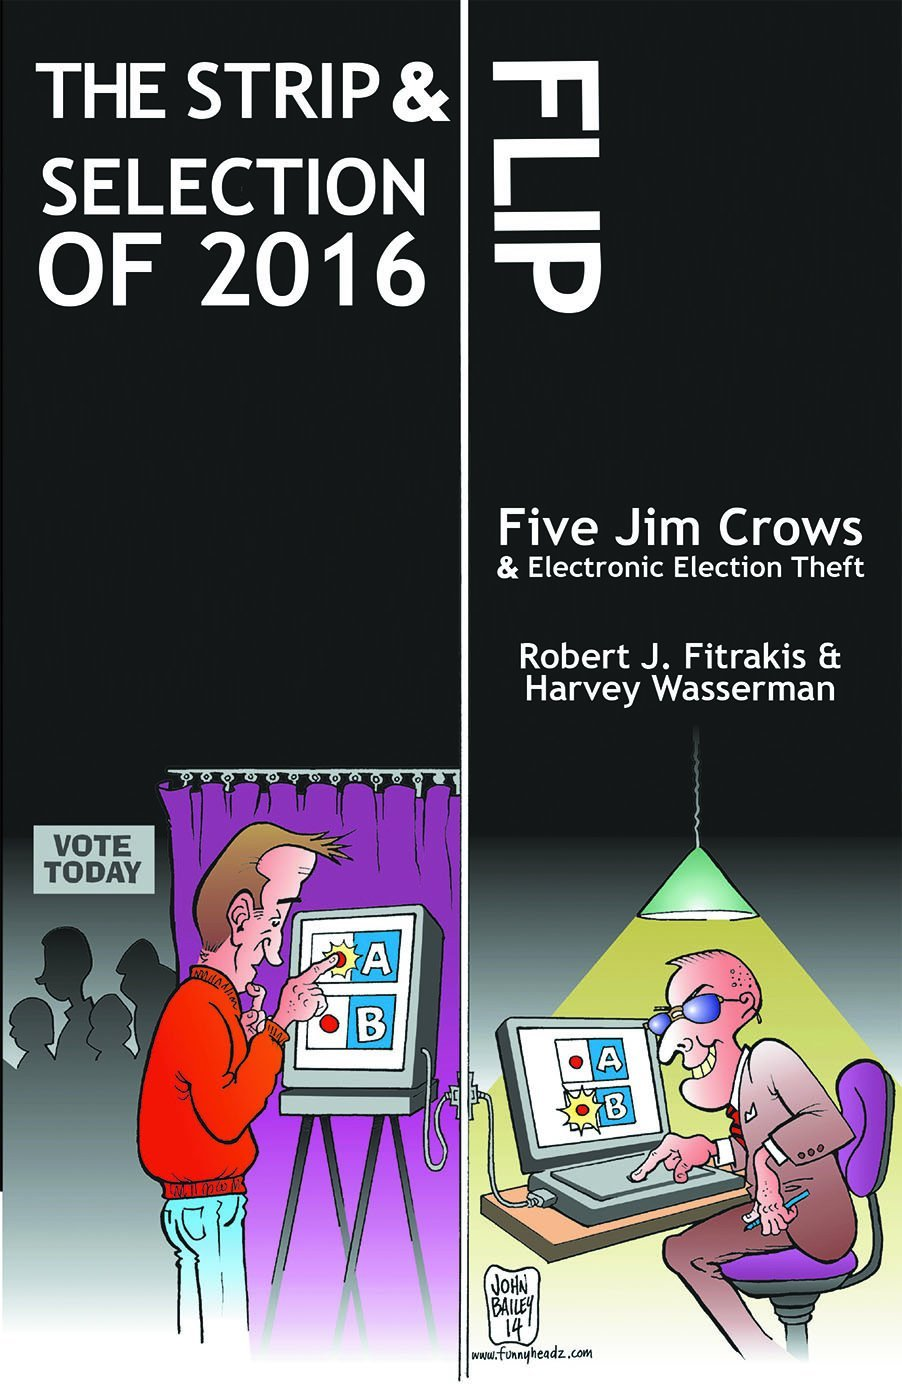 Color lines online strip game - The Strip Flip Selection Of 2016 Five Jim Crows Electronic Election Theft Bob Fitrakis Harvey Wasserman Greg Palast Mimi Kennedy 9781622493364